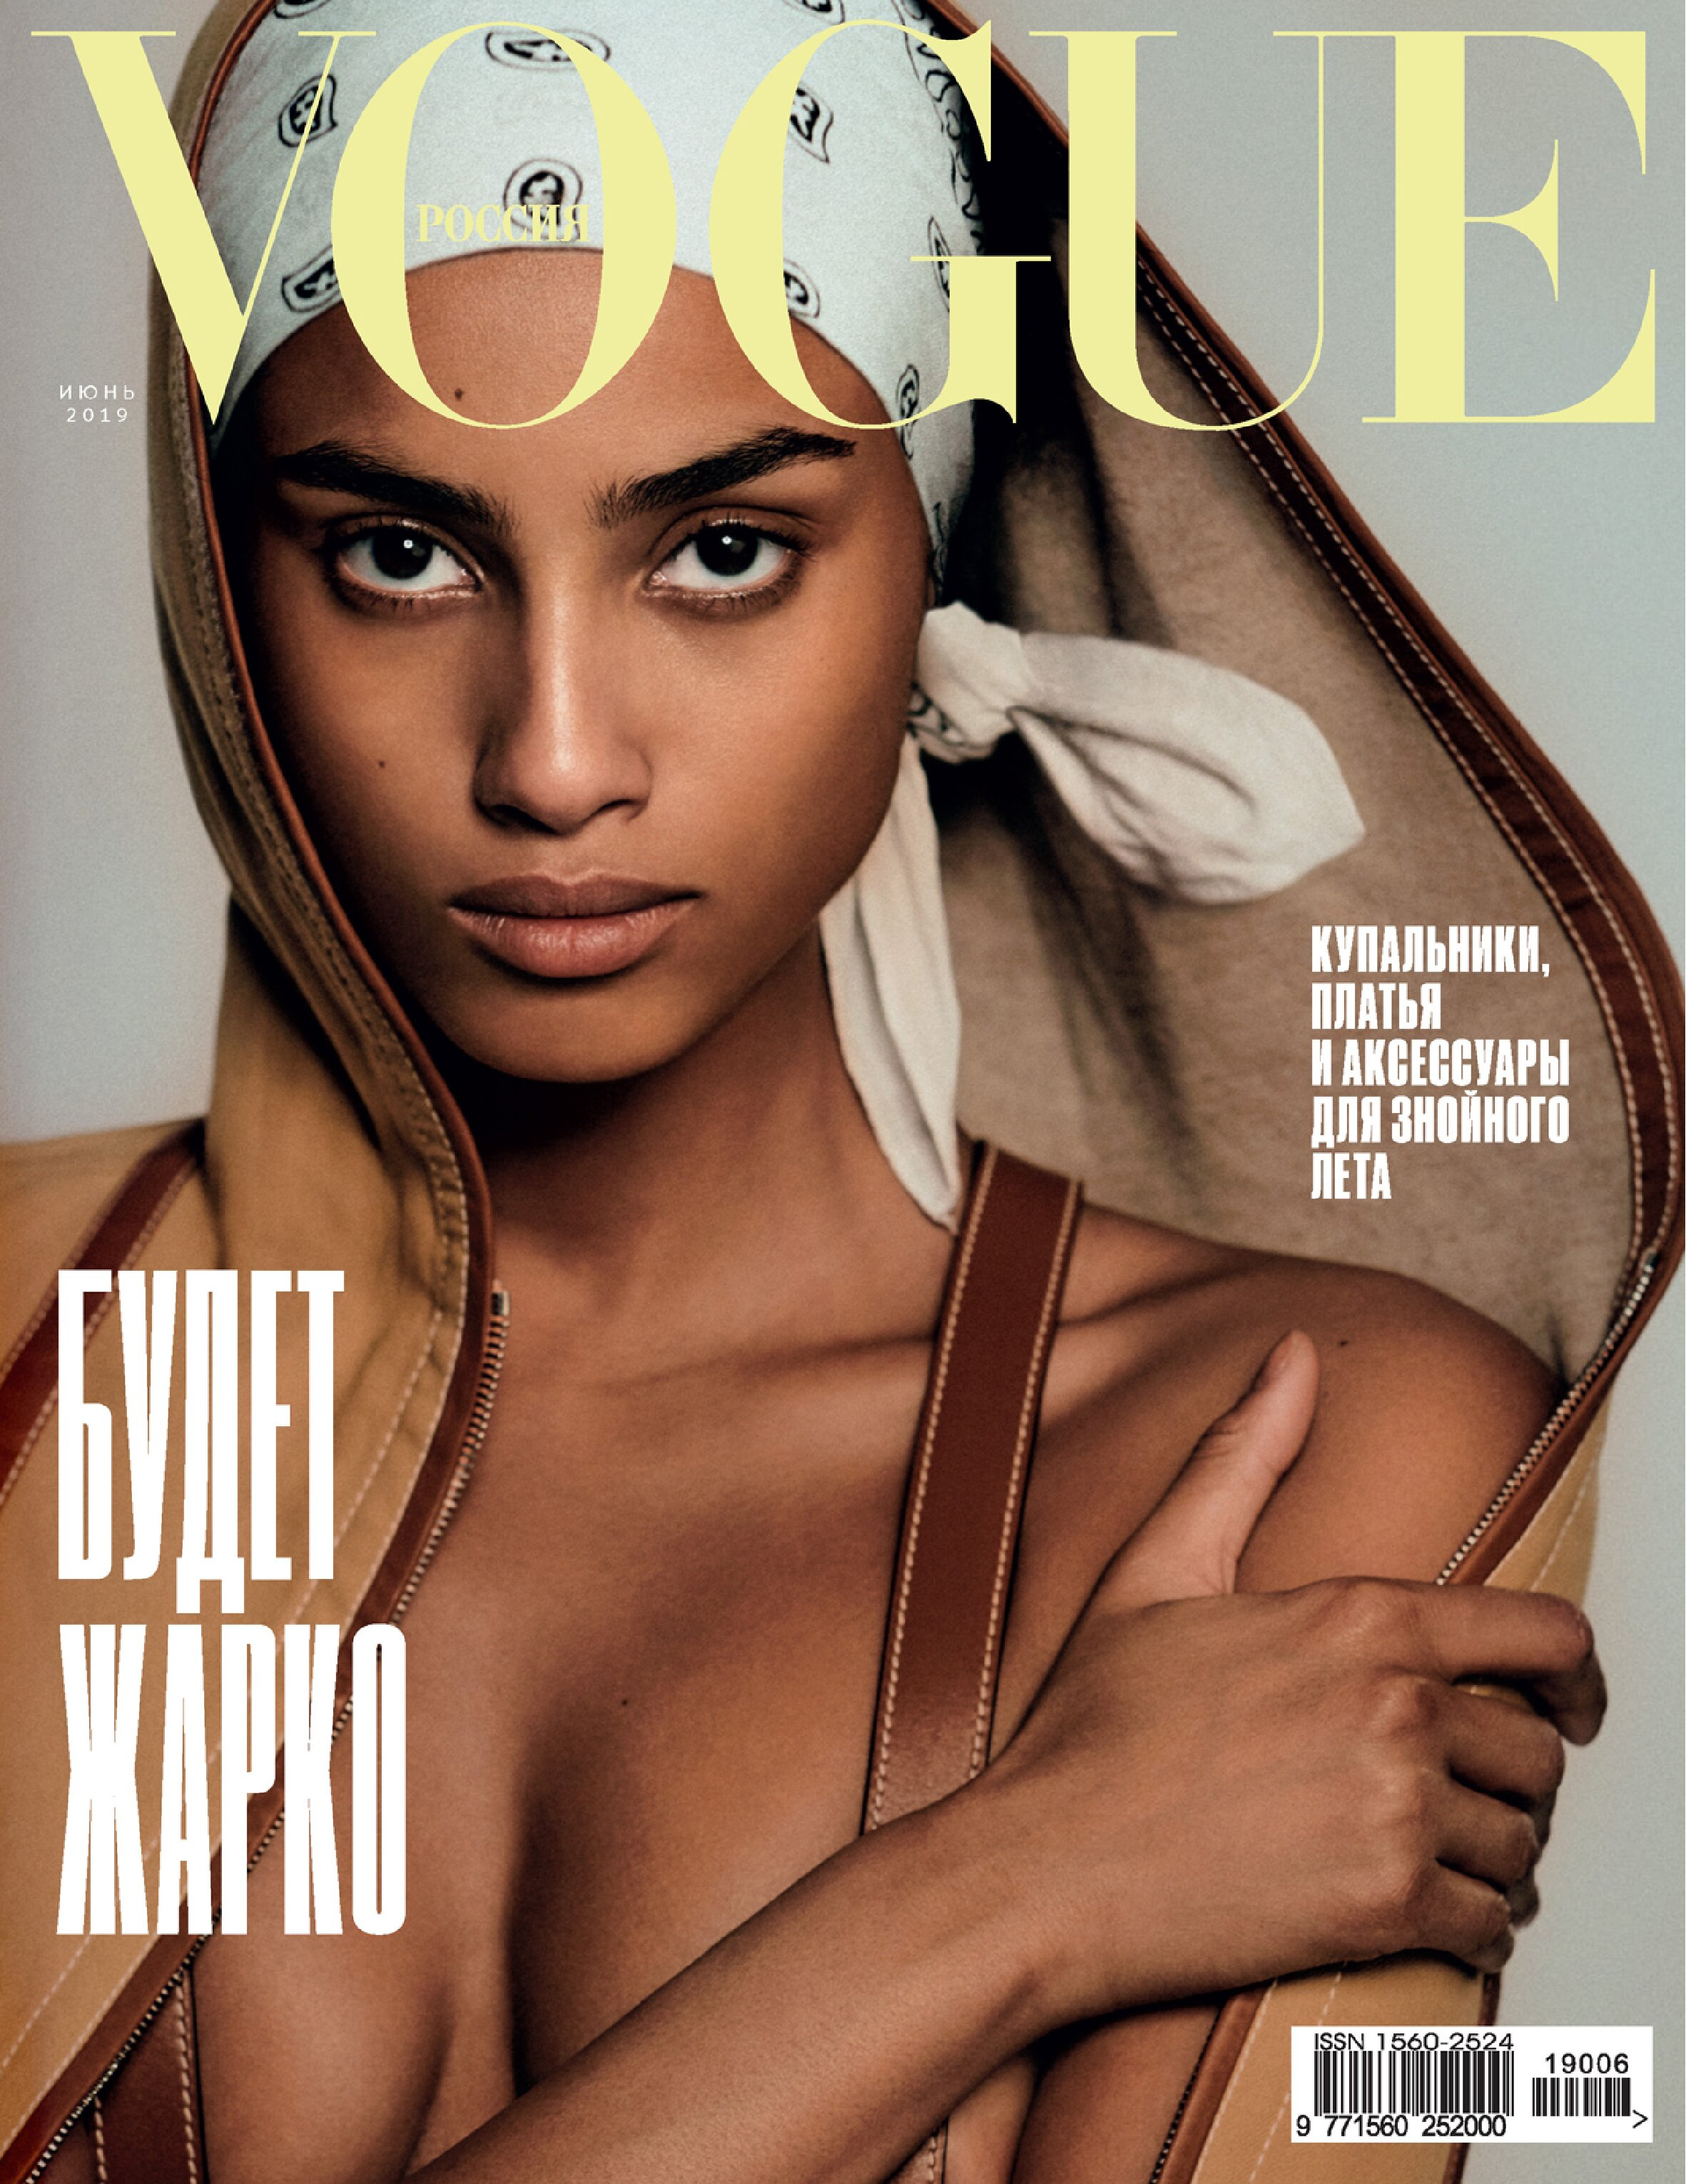 Imaan Hammam by Chris Colls for Vogue Russia (13).jpg